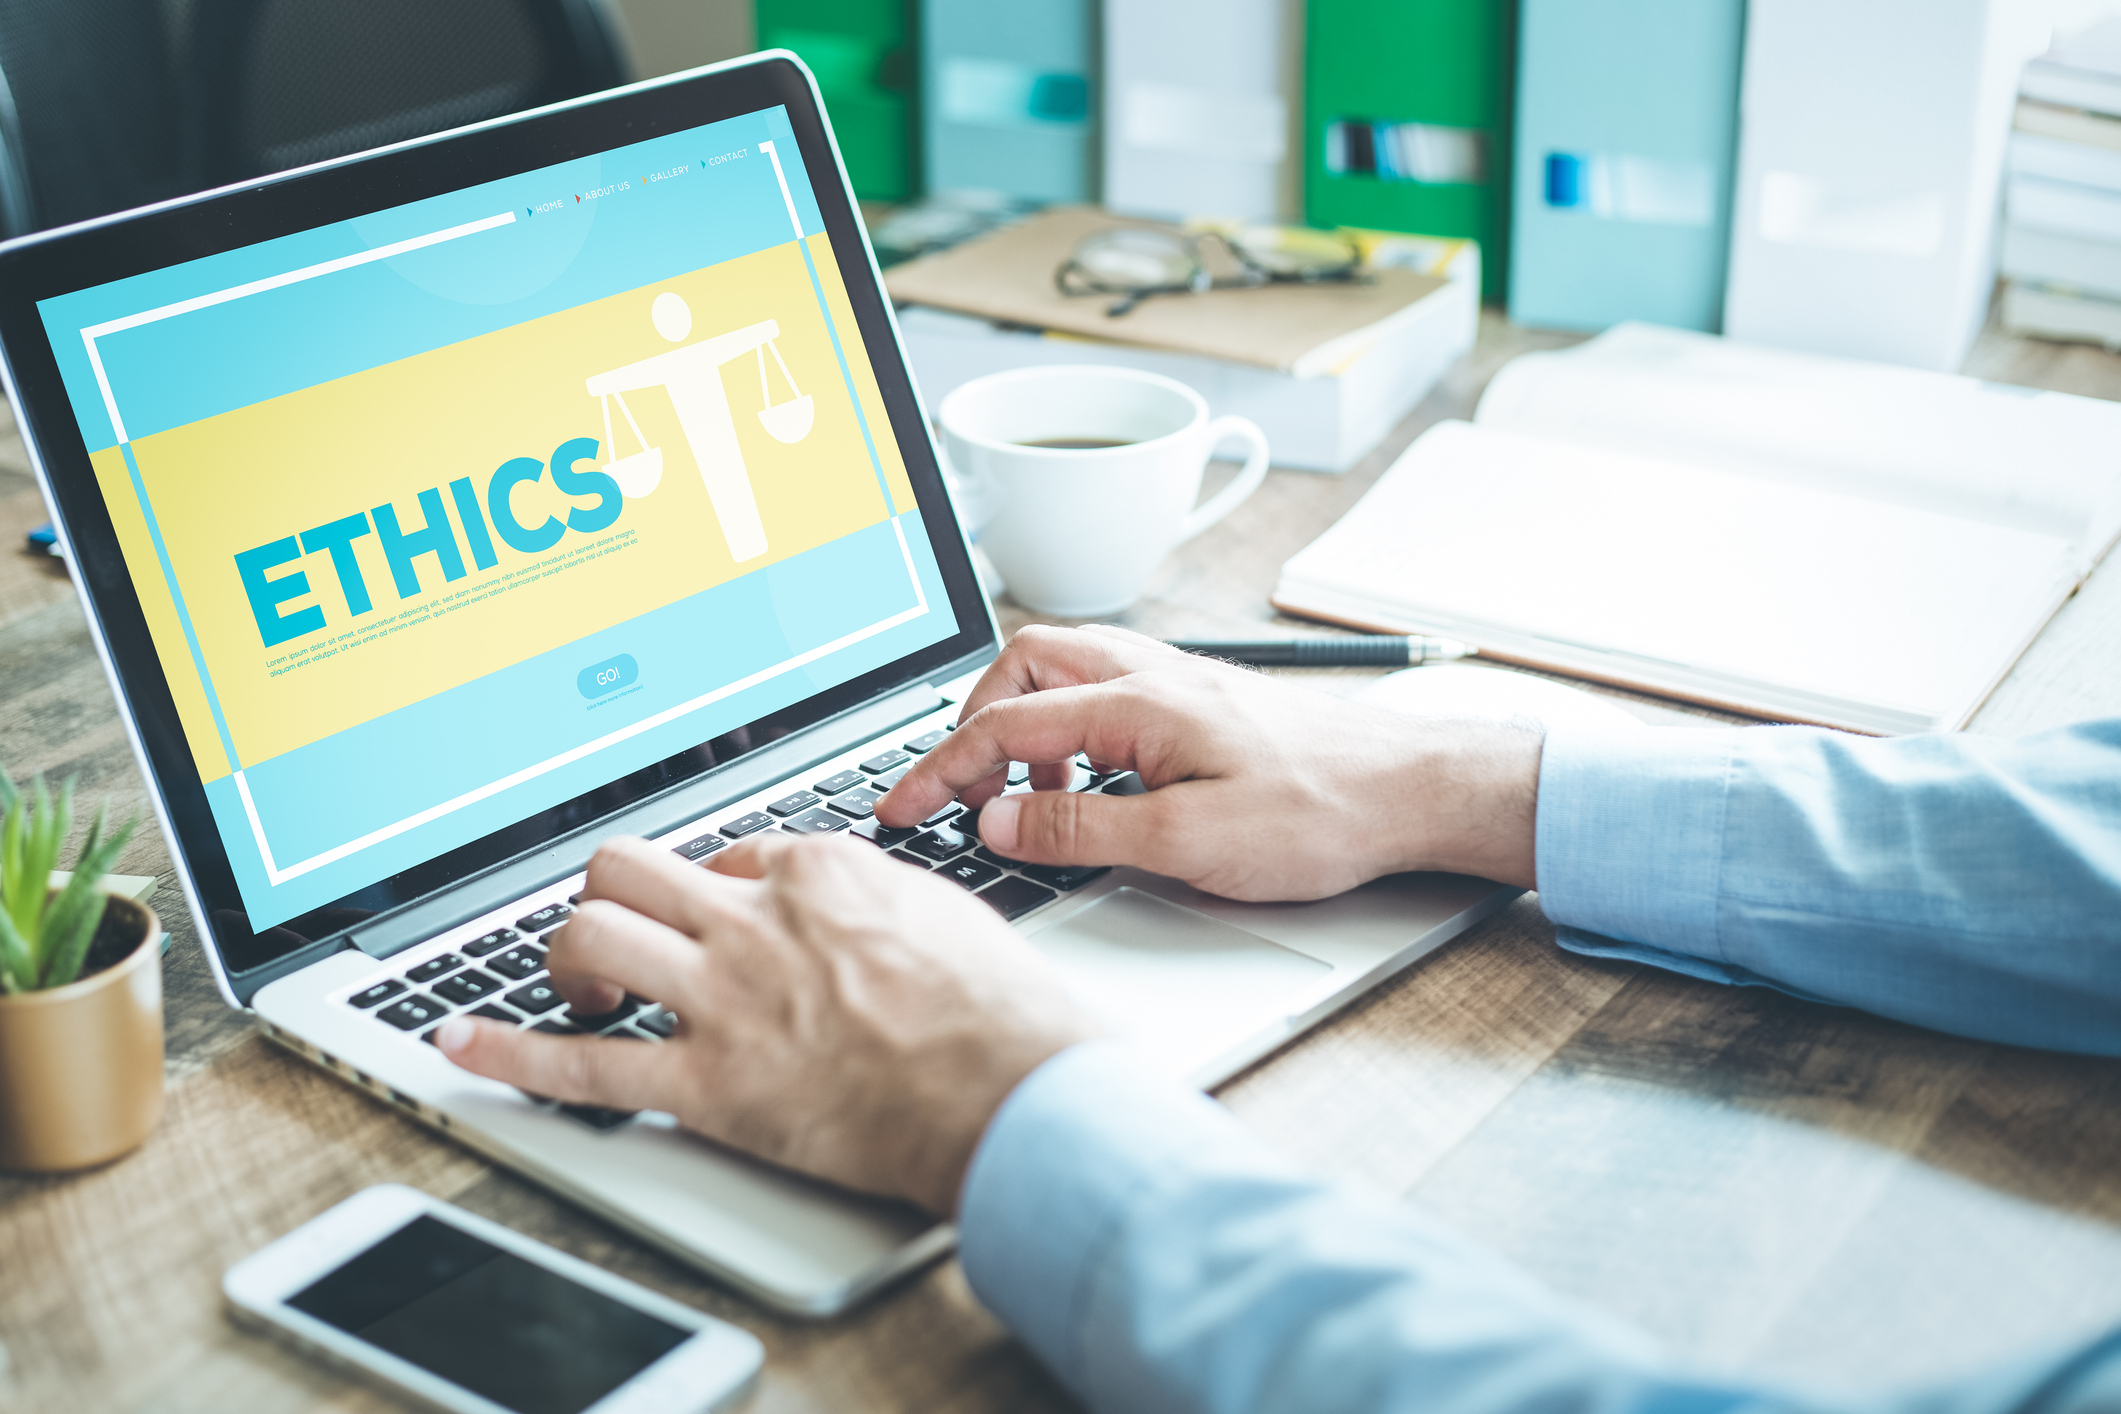 Stock Photo of a laptop browsing ethics